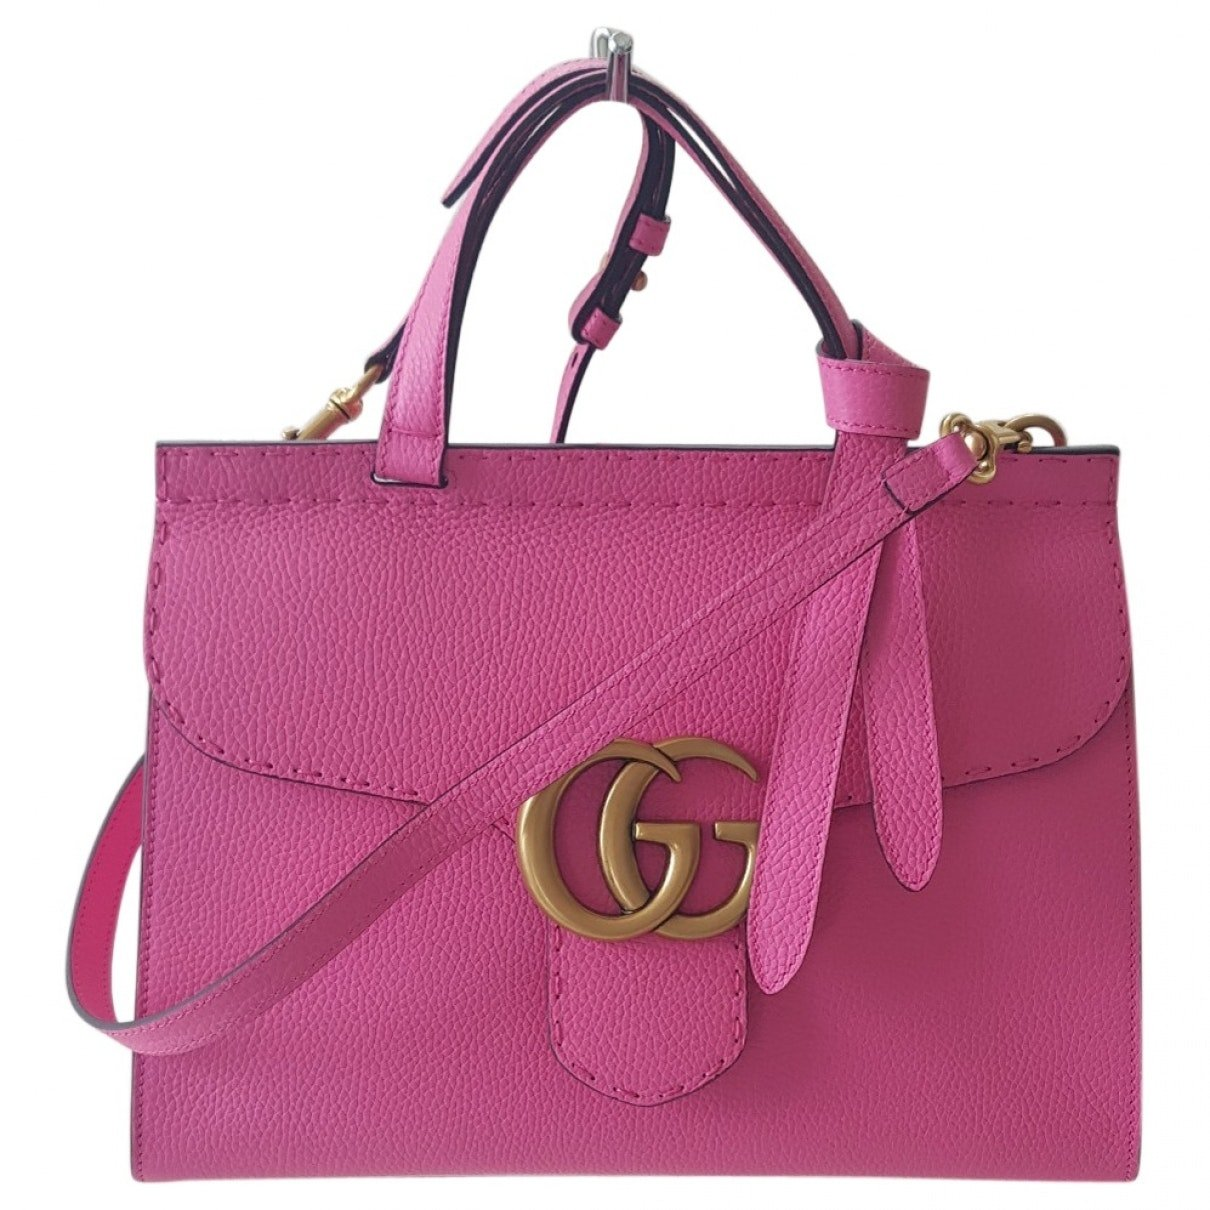 2911be629862 Amazon.com  Gucci Emily Guccissima Leather Chain Shoulder Bag Storm Gray  Leather New  Shoes